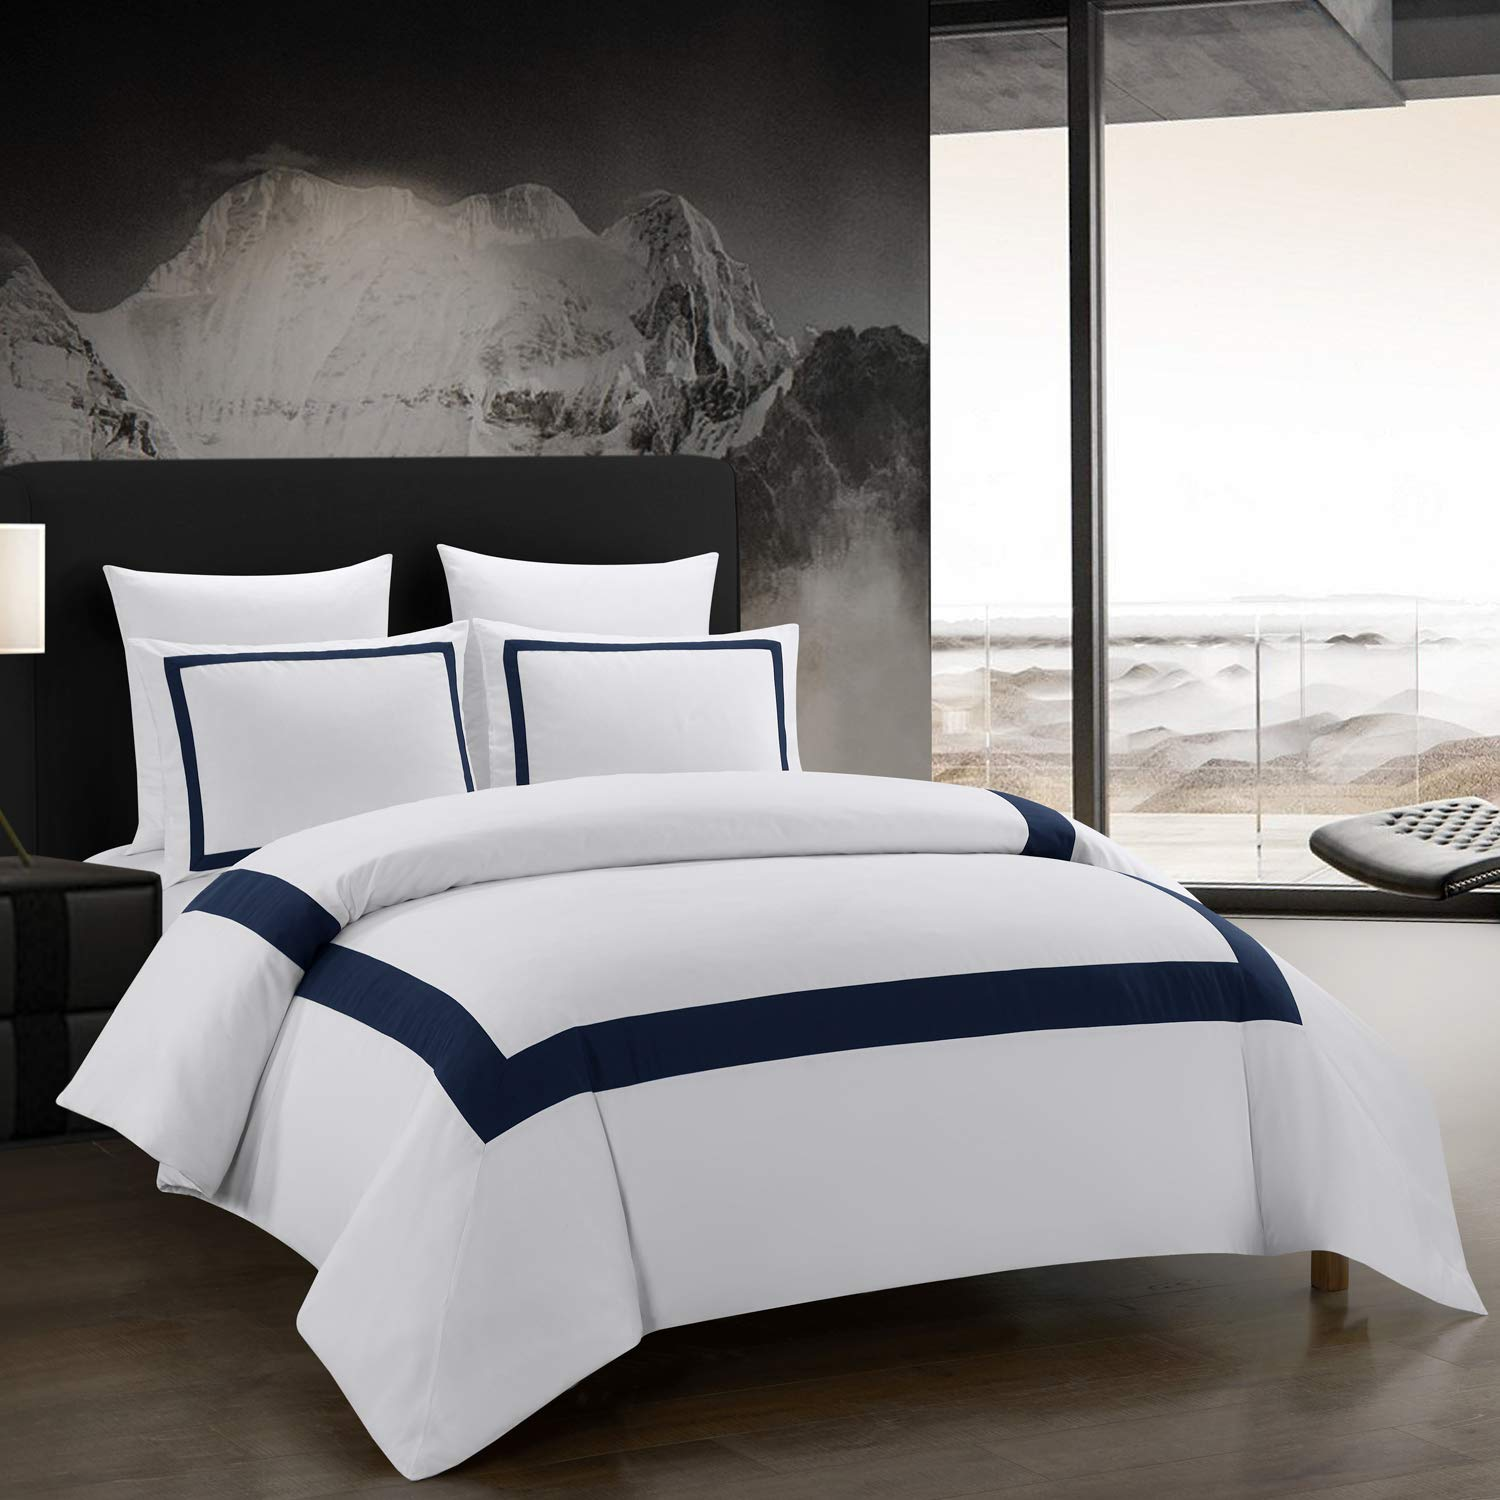 OSVINO 3 Pieces Microfiber Simple Line Style Duvet Cover and Pillow Shams Set Hotel Collection Ultra Soft Bedding Set with Zipper Closure, Navy, King